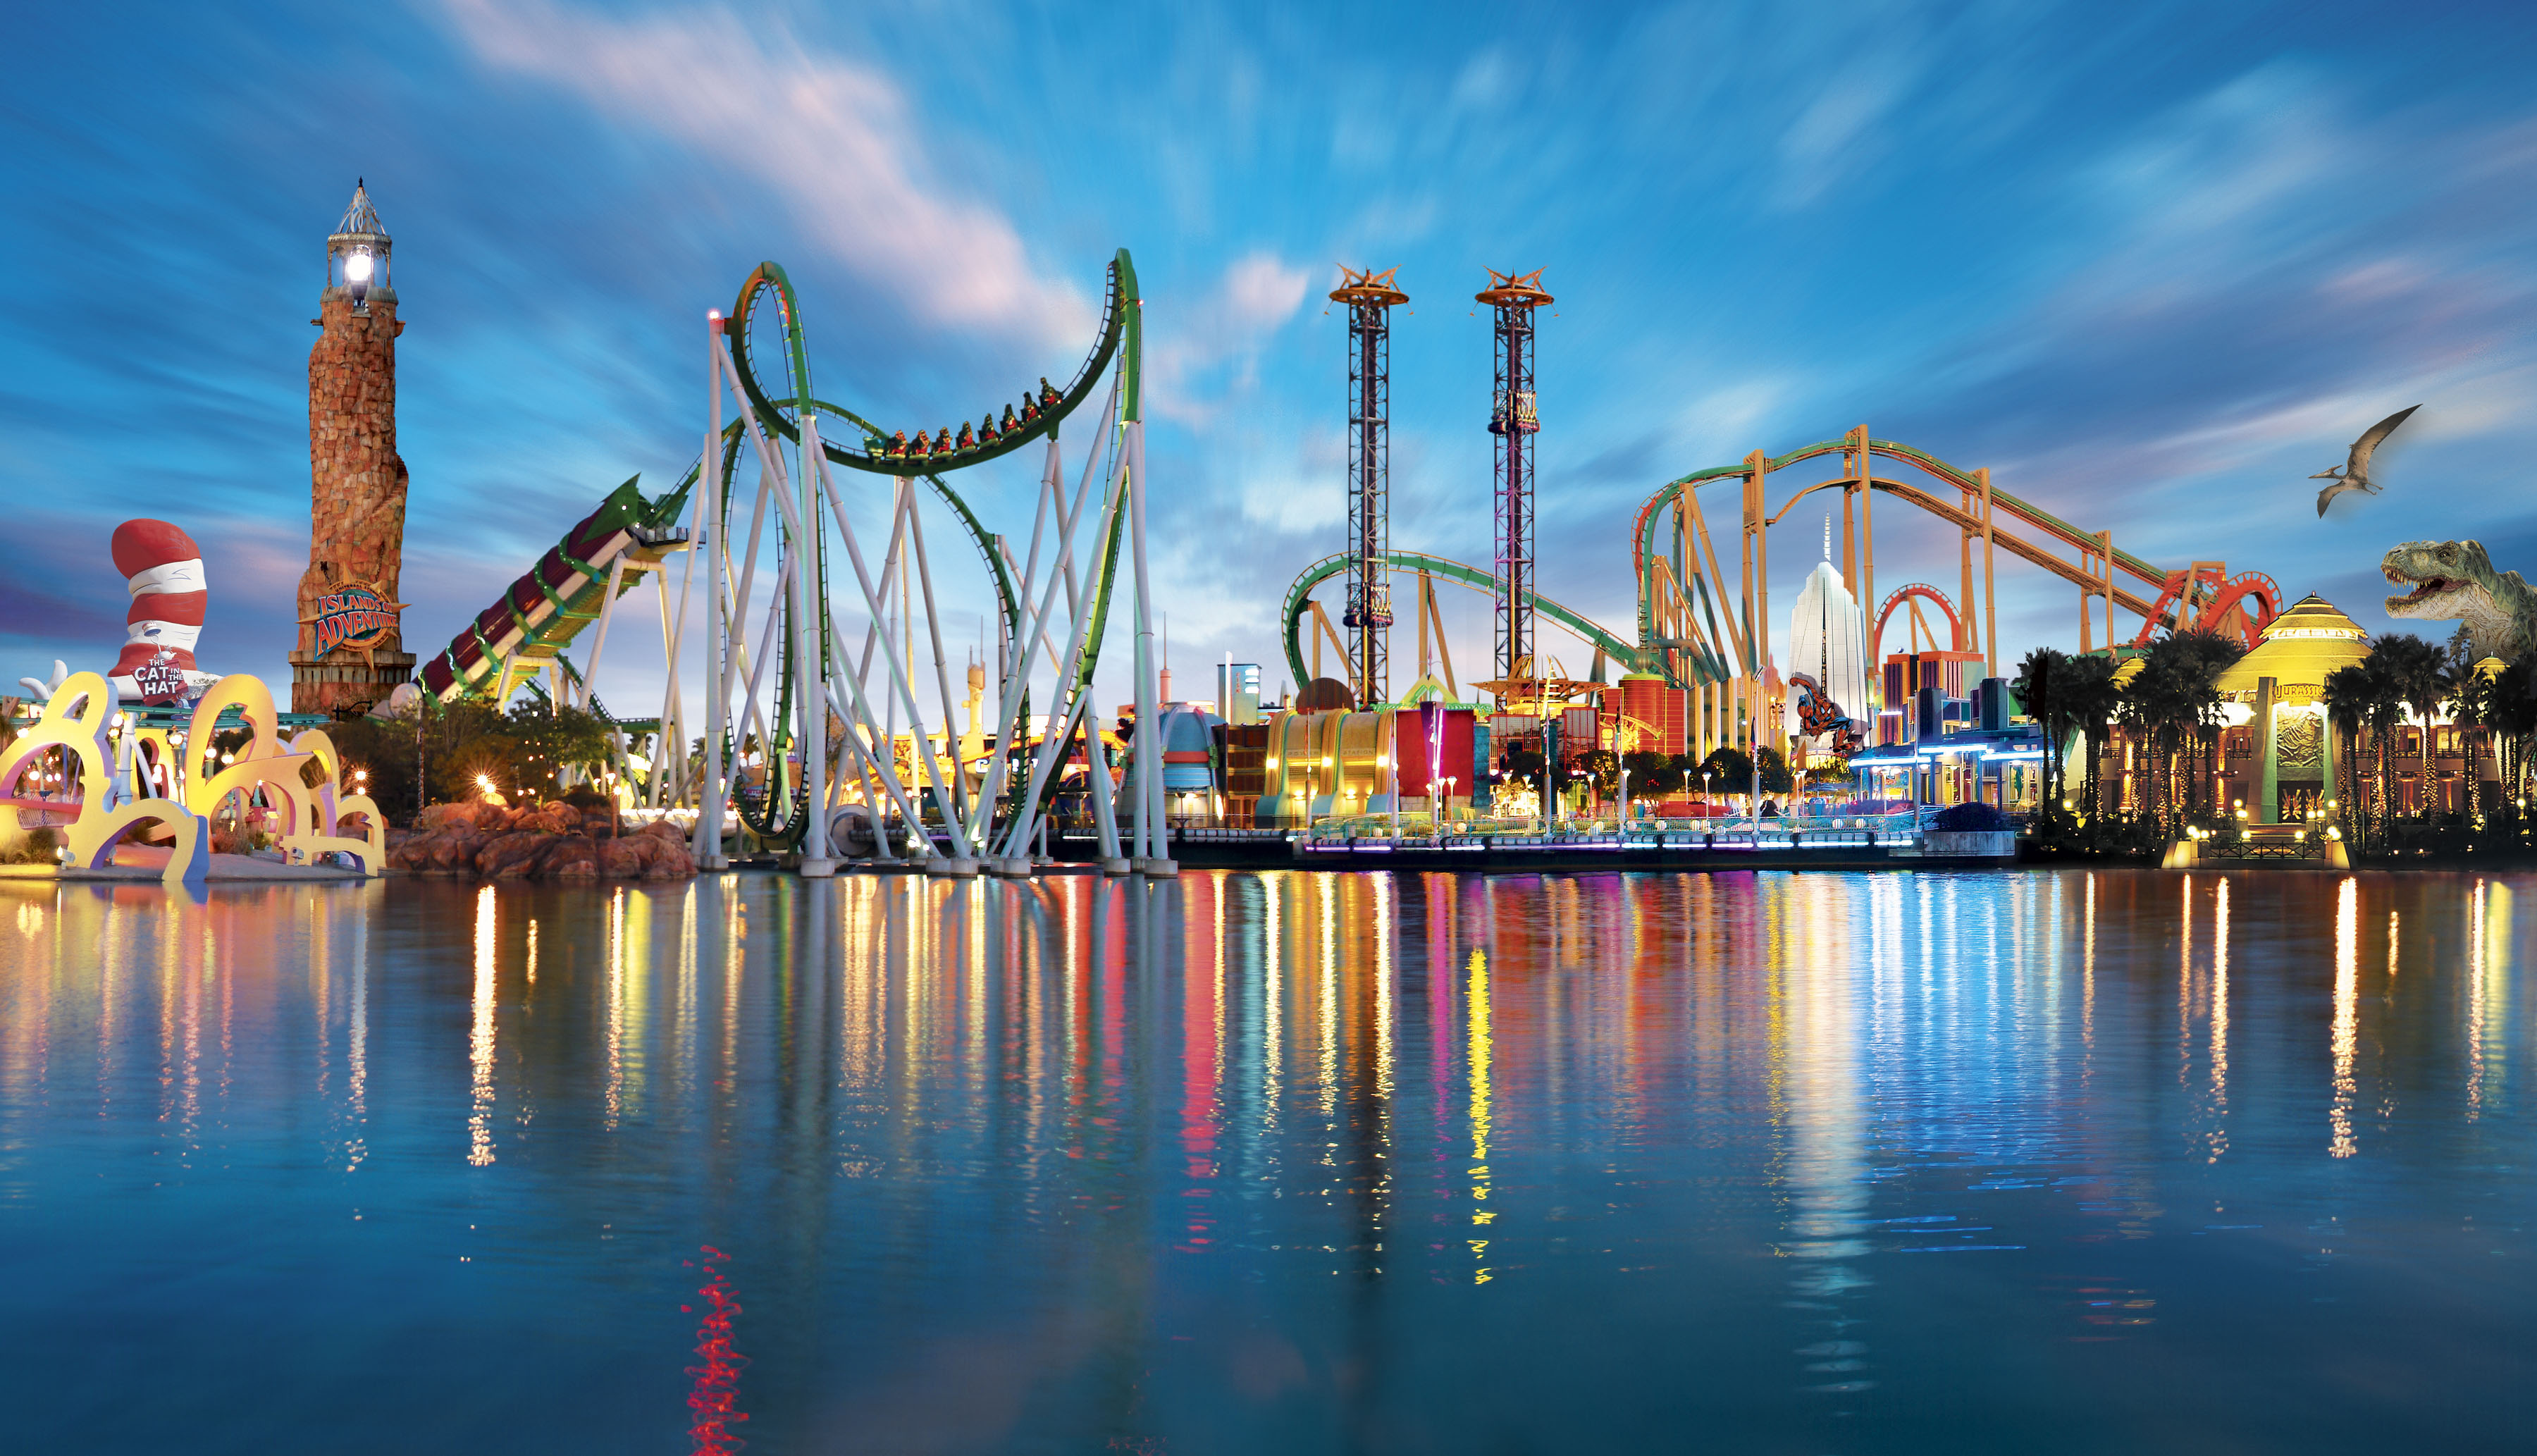 Make the most of Orlando | Orlando Ticket Deals